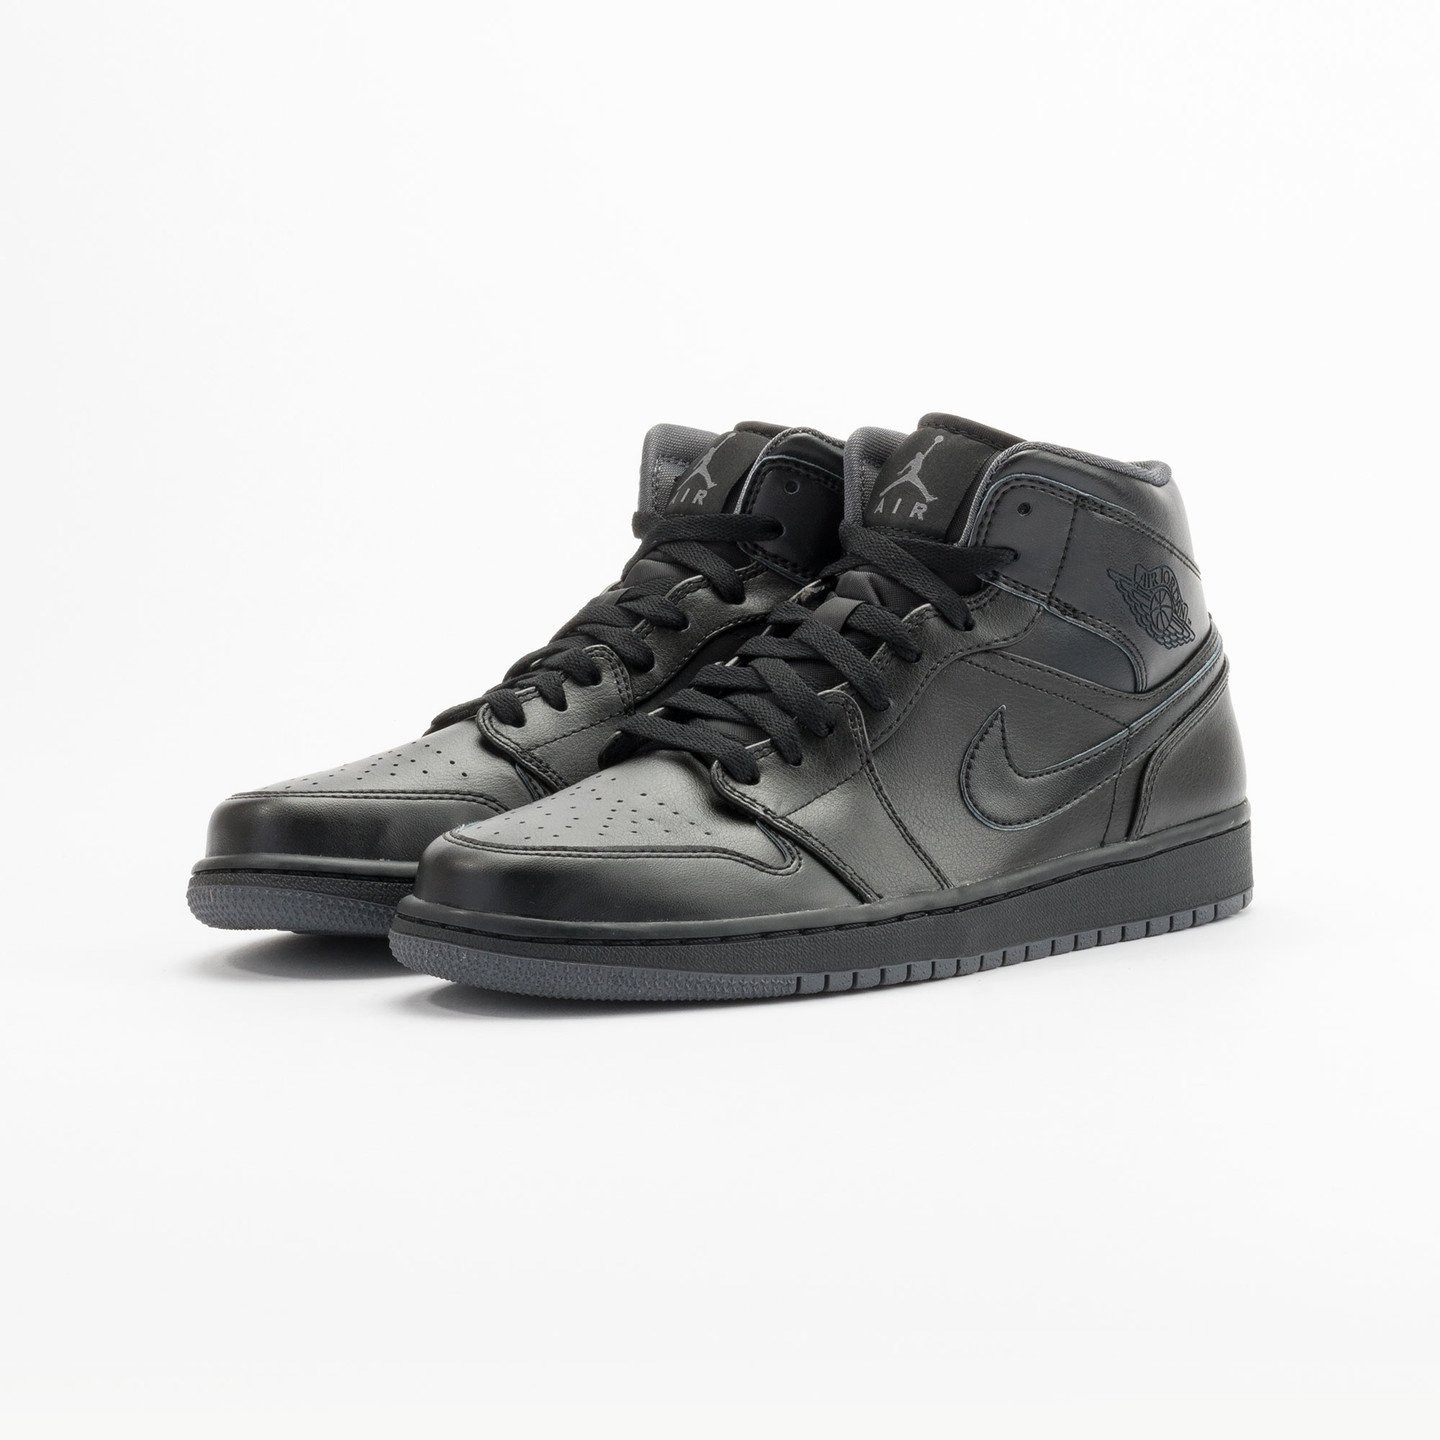 Jordan Air Jordan 1 Mid Black / Dark Grey 554724-021-40